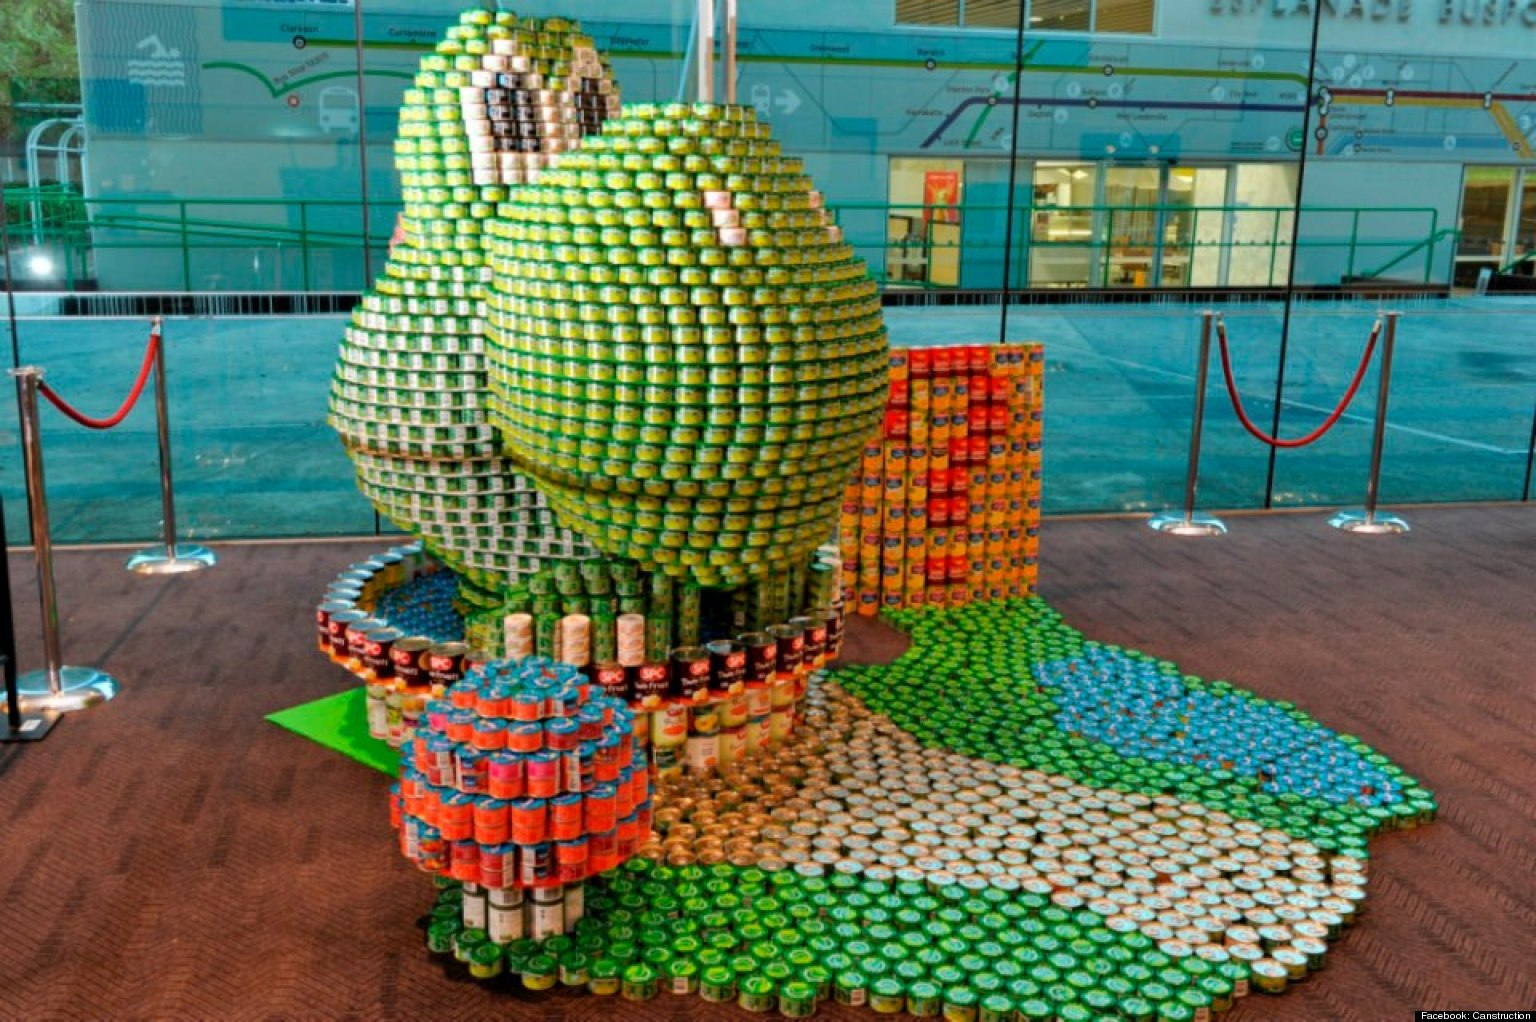 canstruction non profit group builds sculptures made of